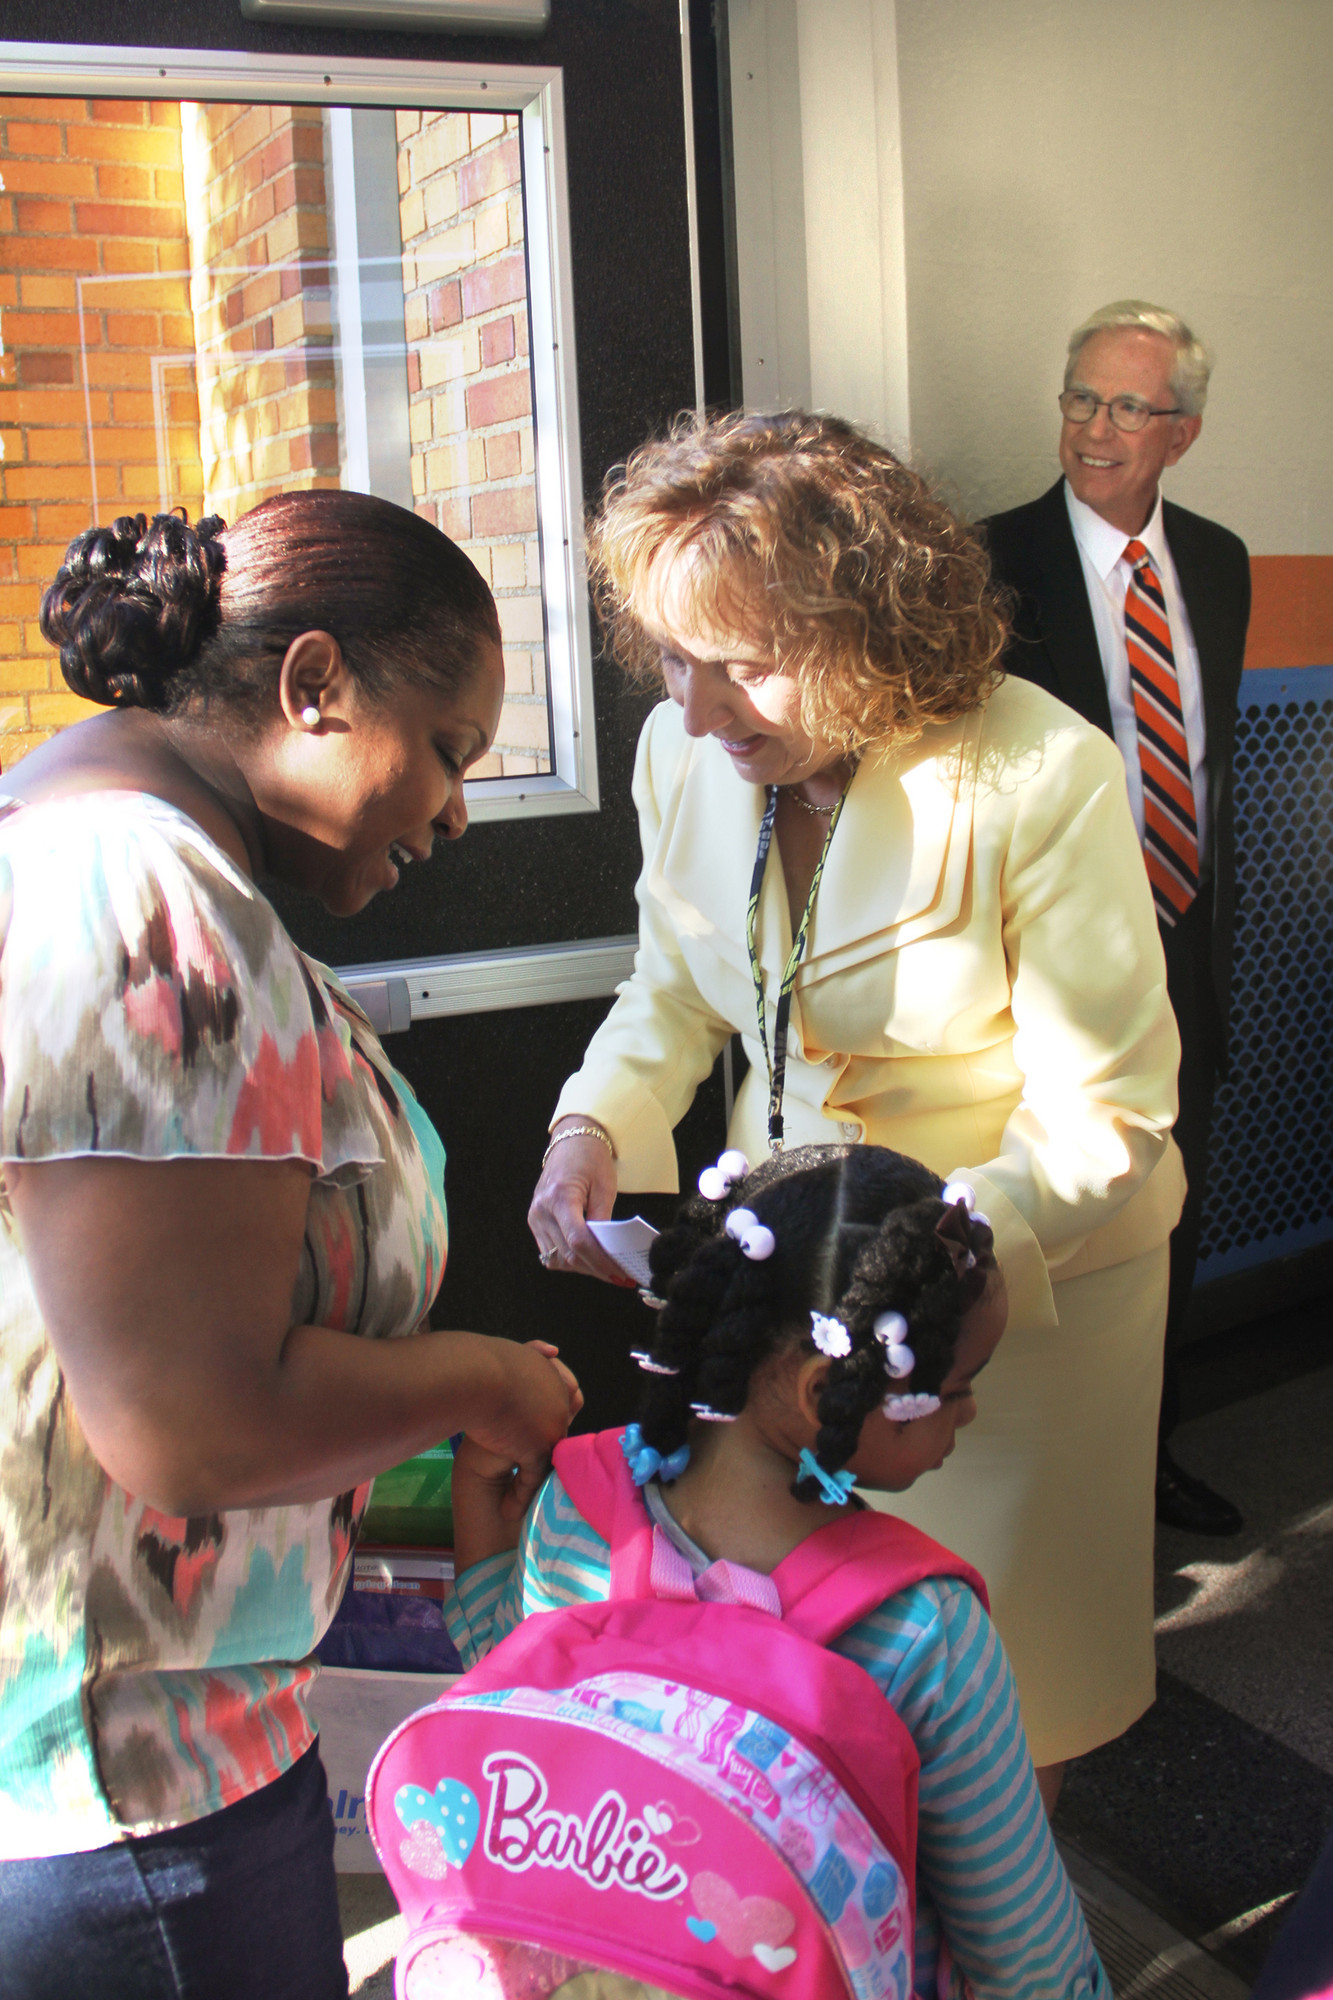 Principal Margaret McDaid and Superintendent Dr. James Hunderfund greet Danielle Johnson and her mom on the first day of school.